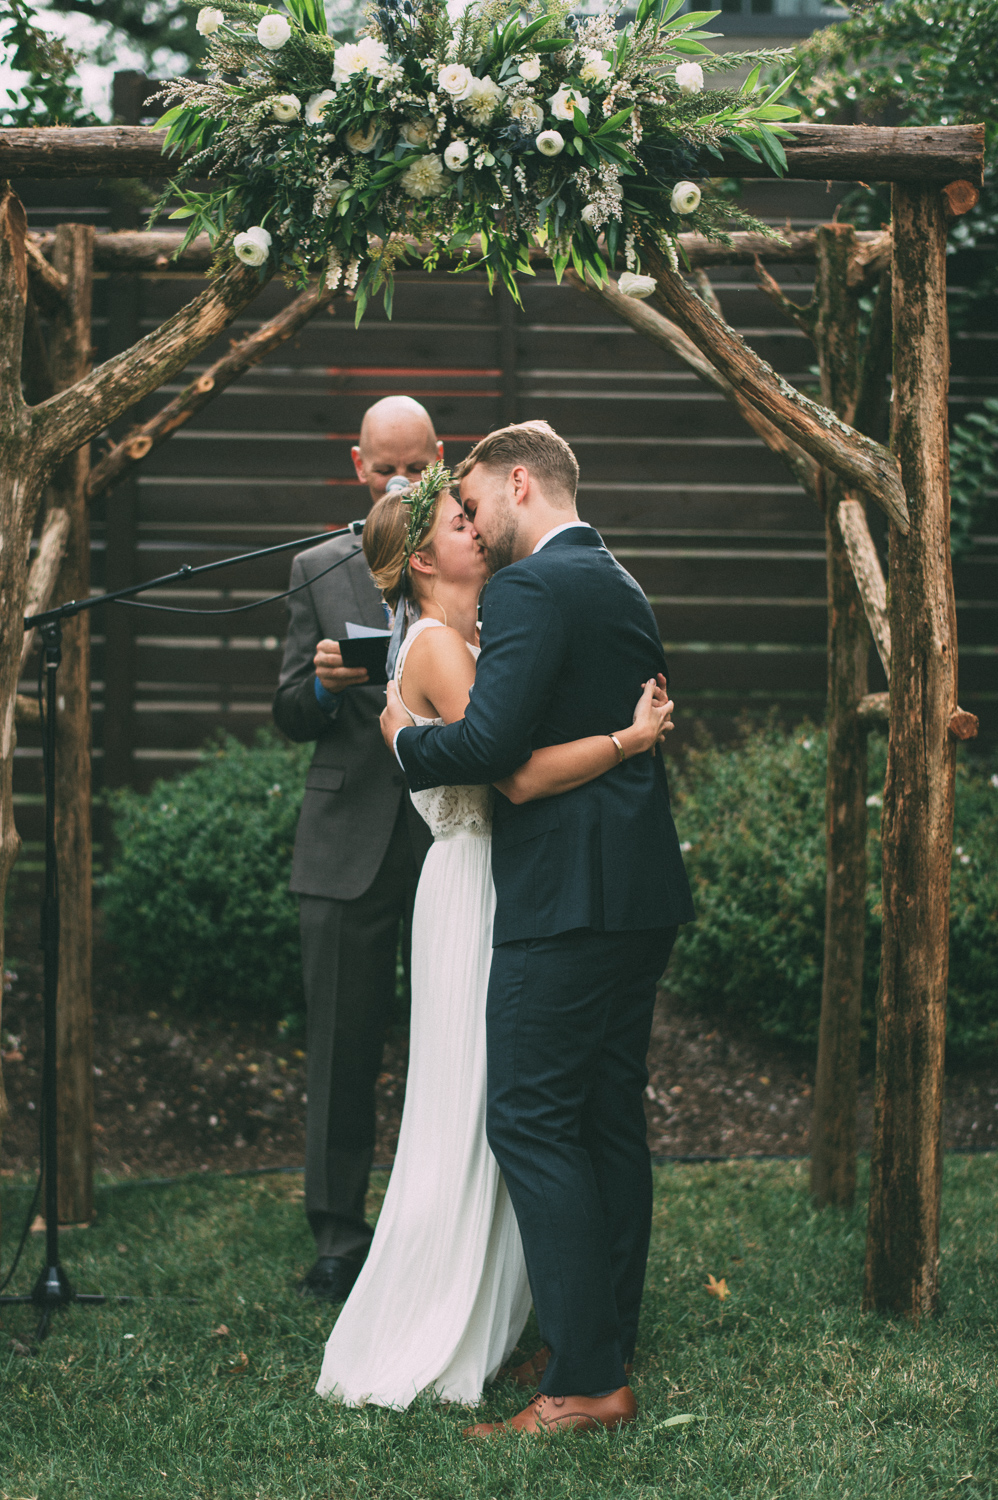 CordelleWedding_NashvilleWeddingPhotographer_by_TheImageIsFound_0088.jpg